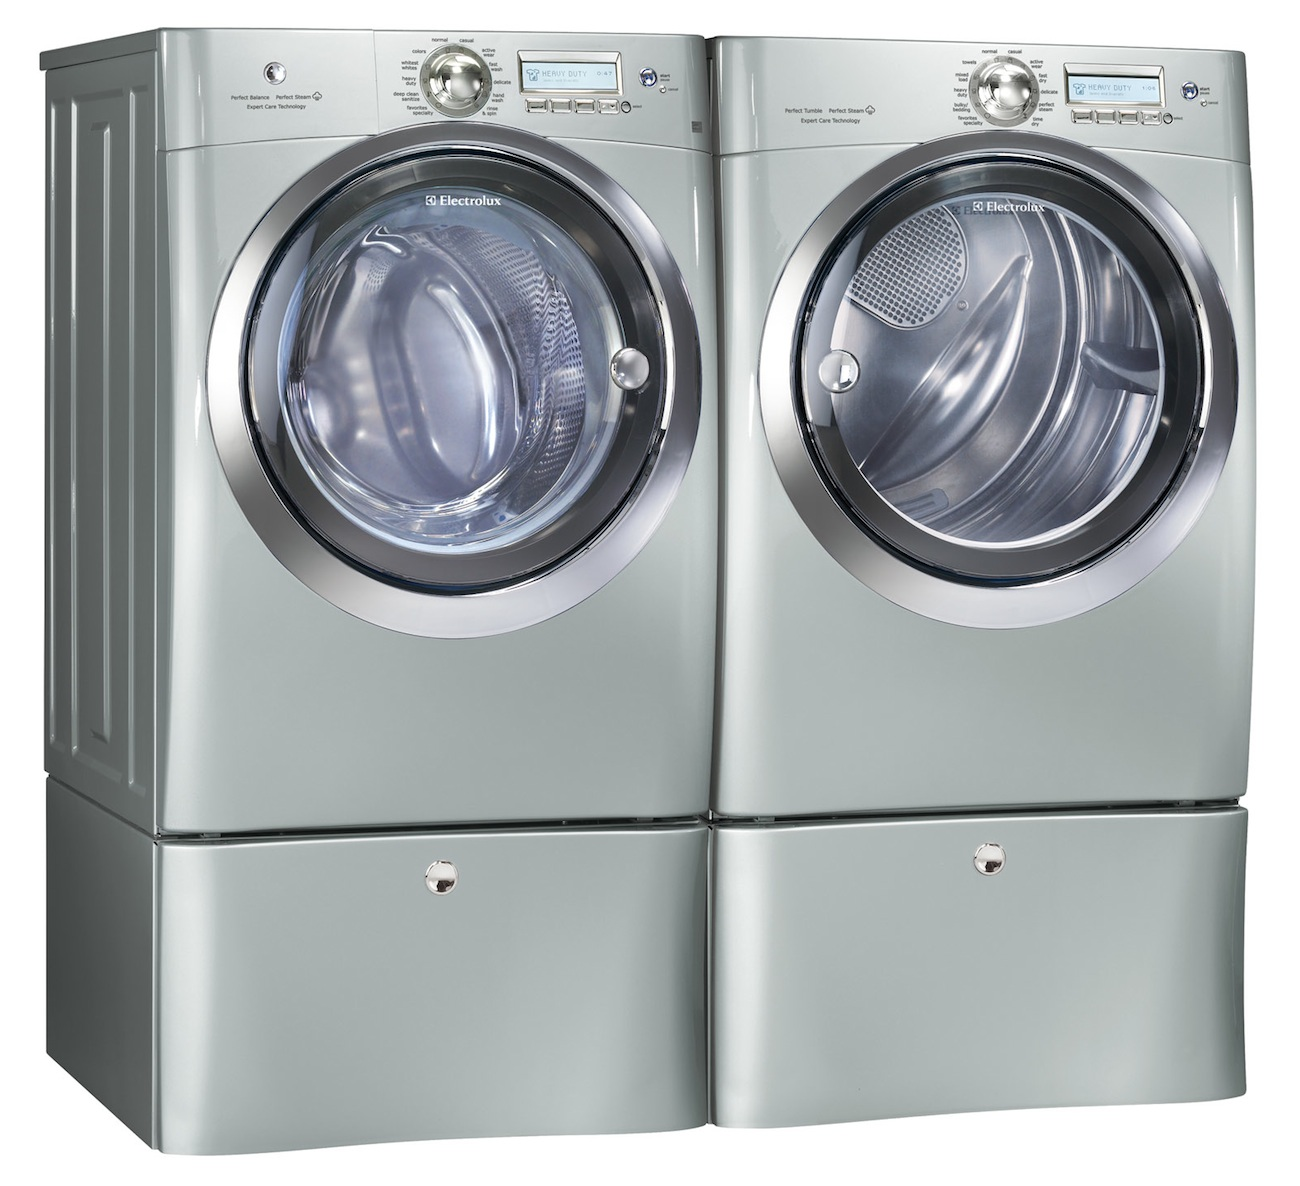 Electrolux Silver Steam Washer And Steam Gas Dryer Laundry